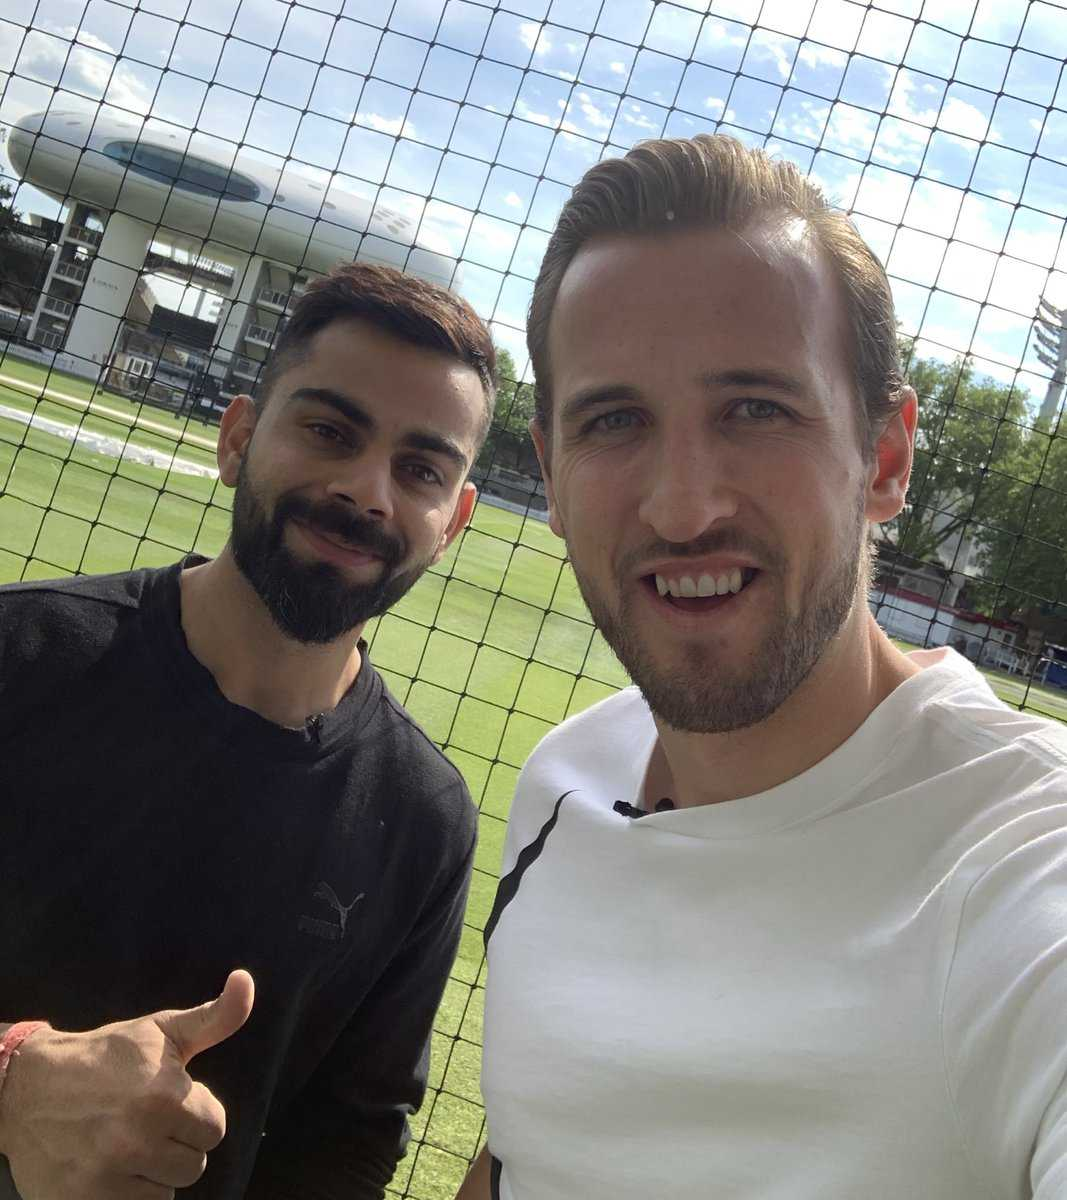 Virat Kohli and Harry Kane: Spurs star posts a photo with India's Skipper on Twitter